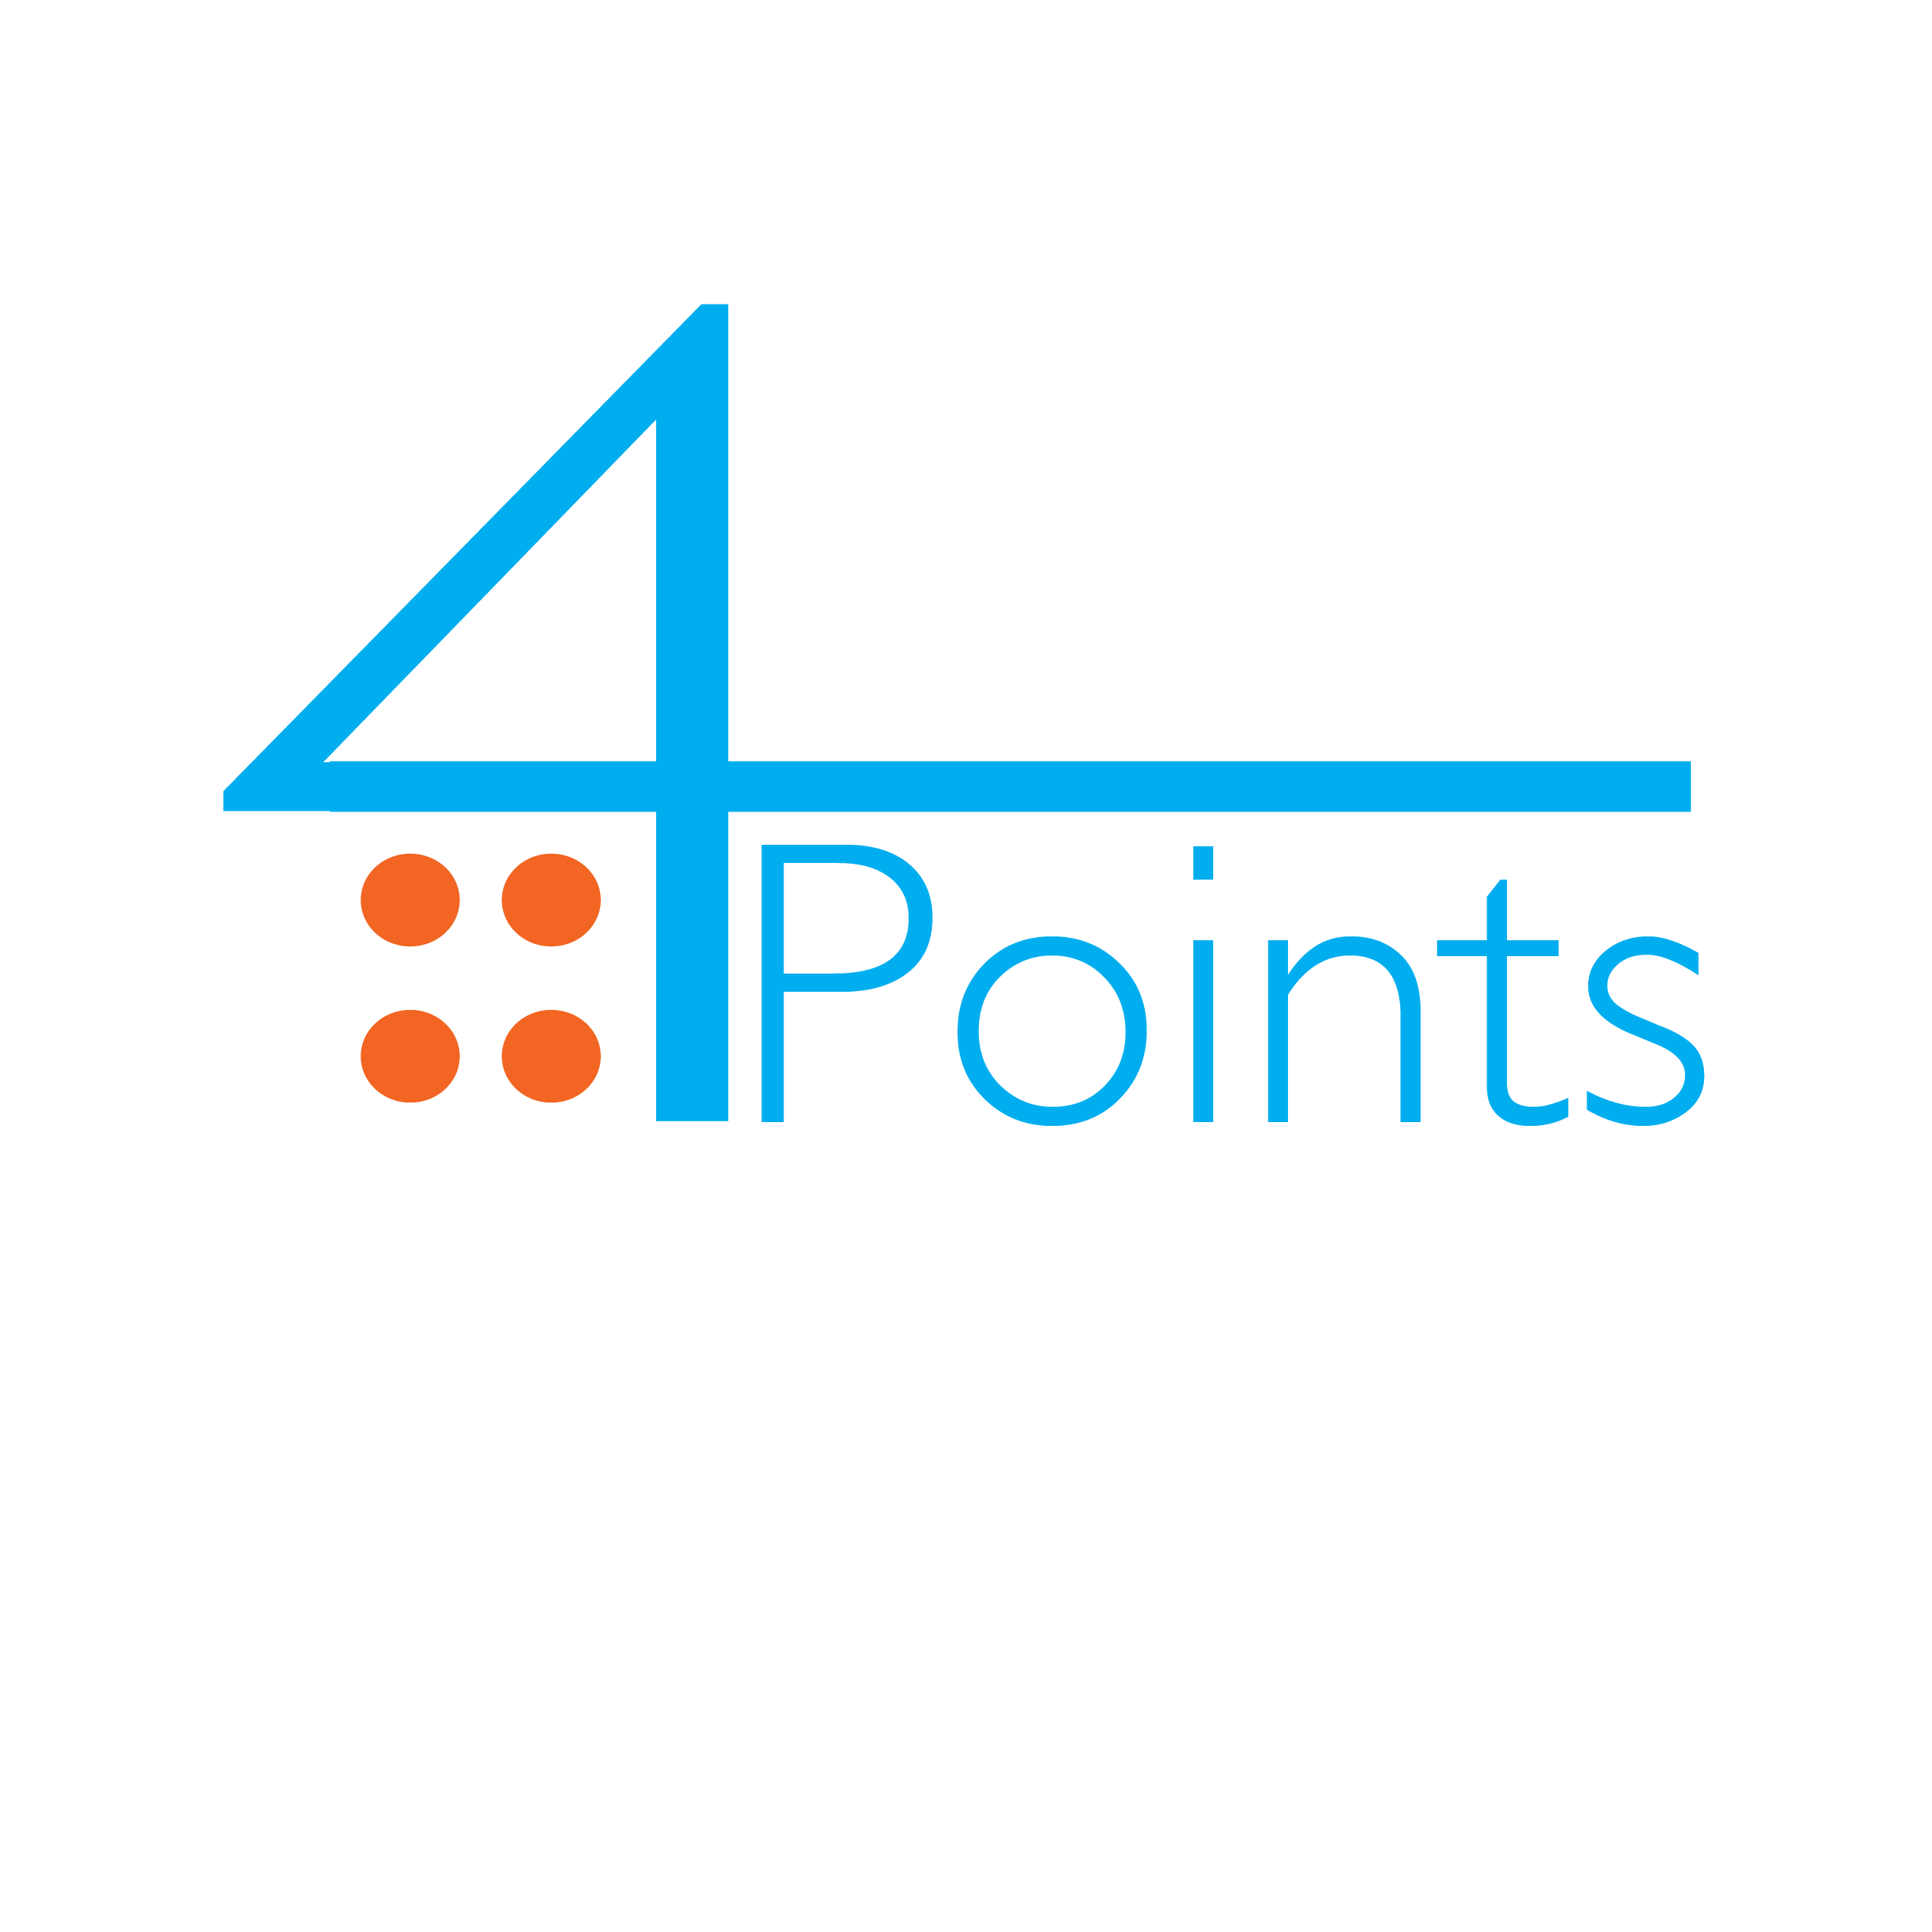 4 Points Counseling: A Top-Notch Center Helping to Achieve Total Wellbeing